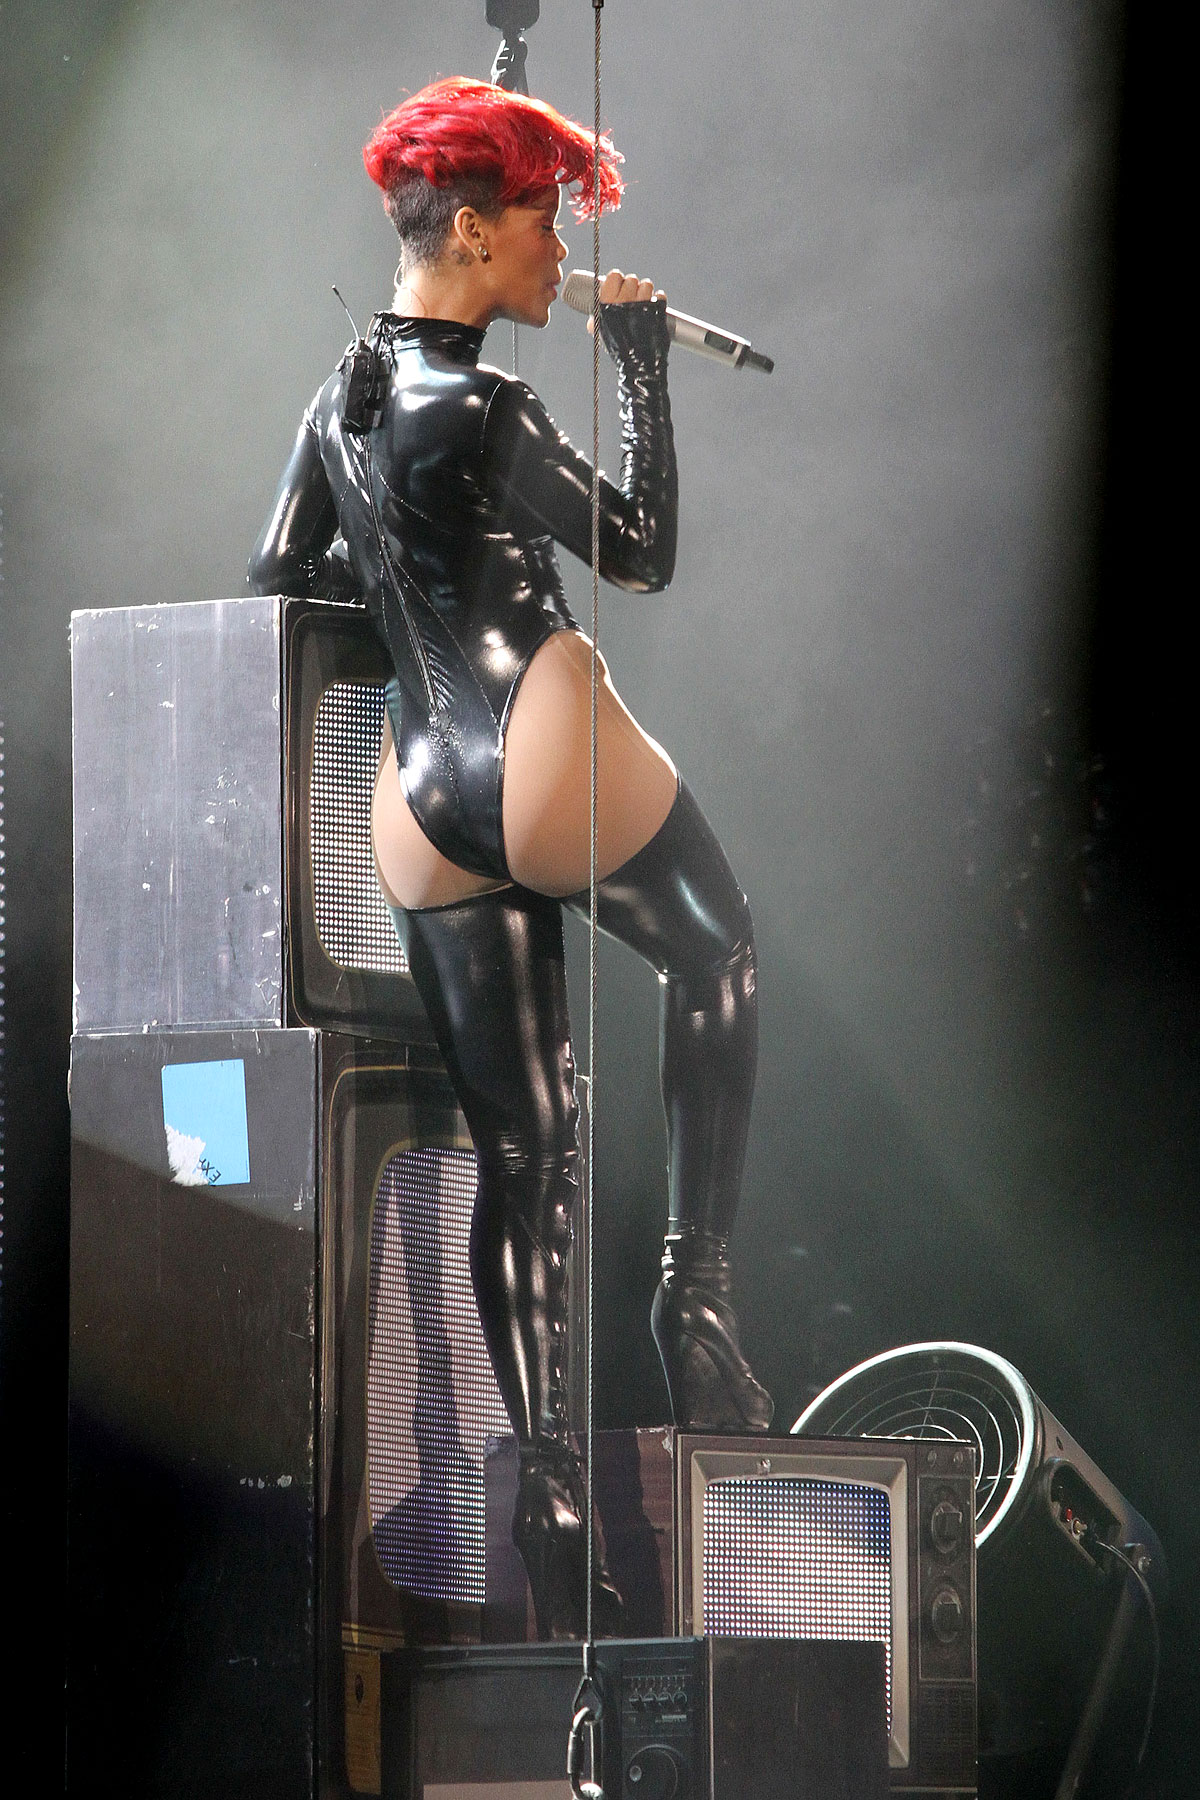 Rihanna Gets Cheeky for Tour Kickoff Date (PHOTOS)